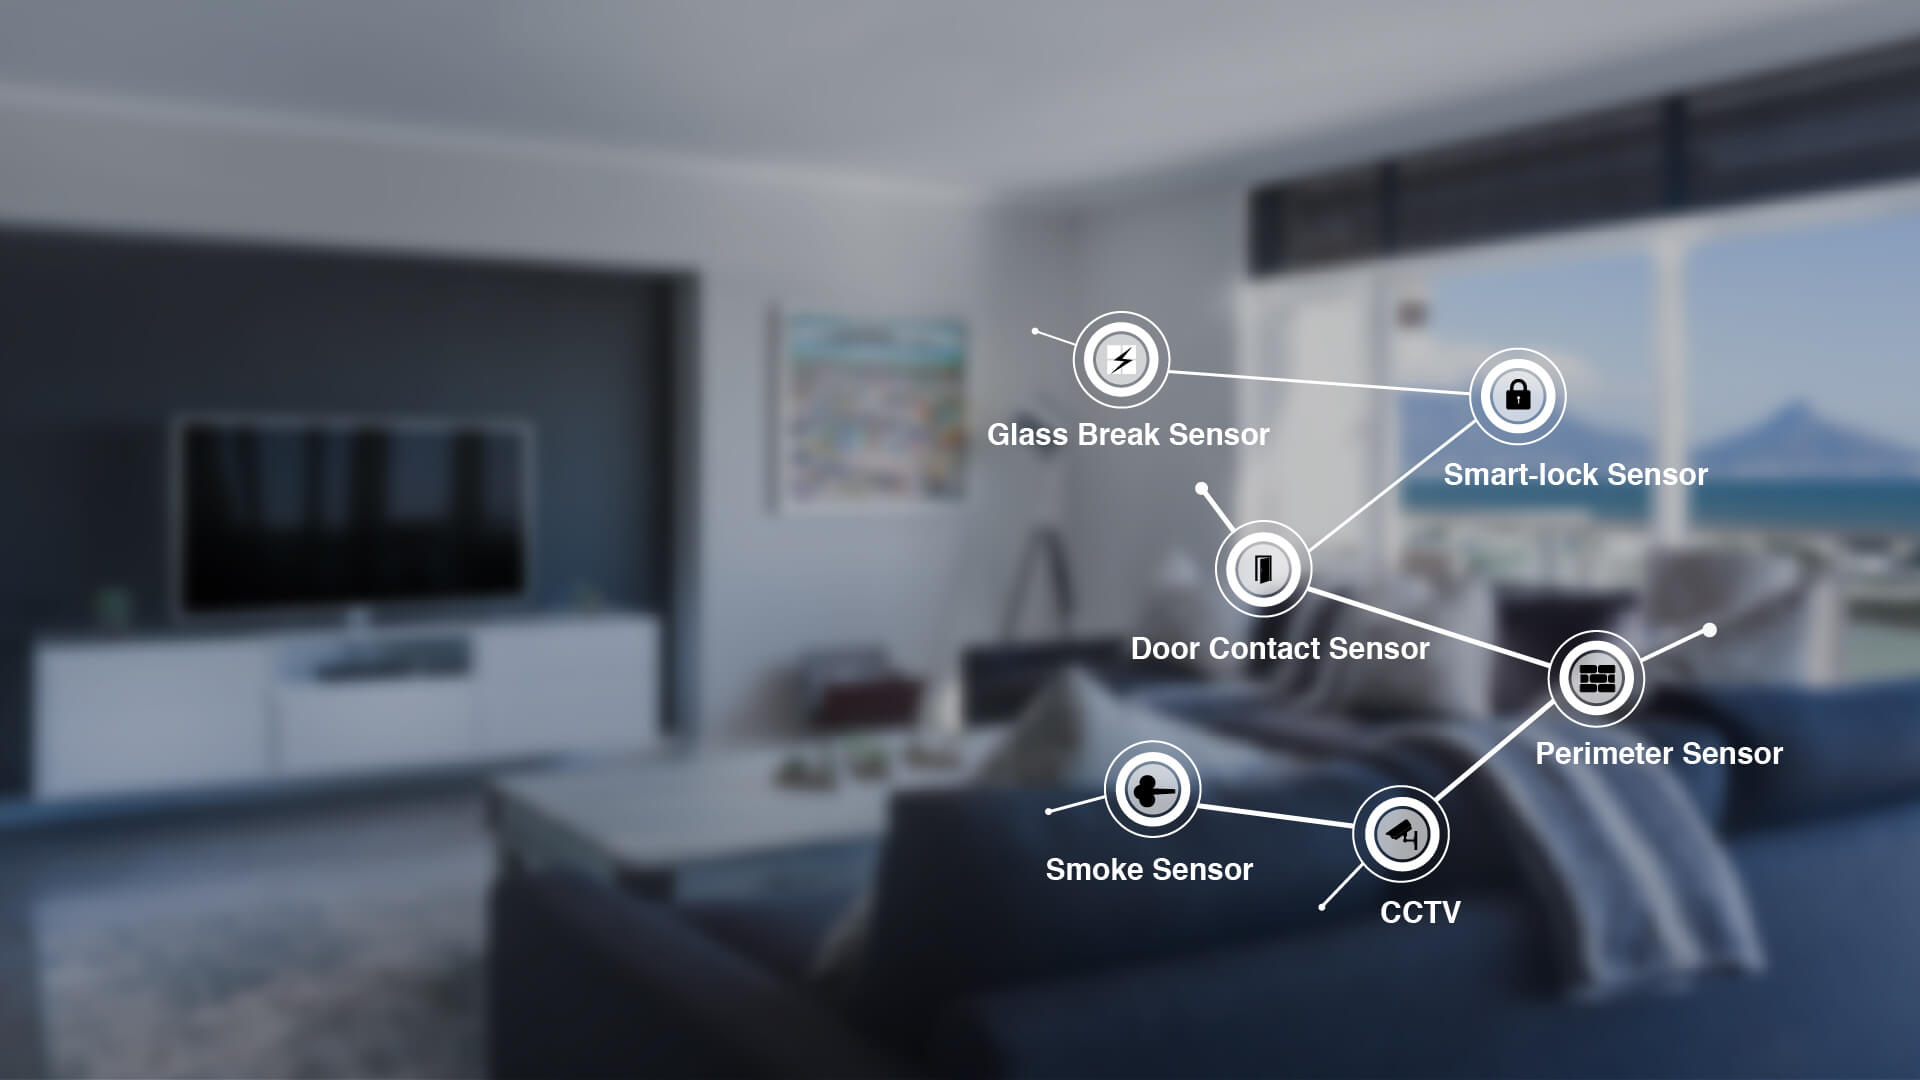 Security and sensors in home automation